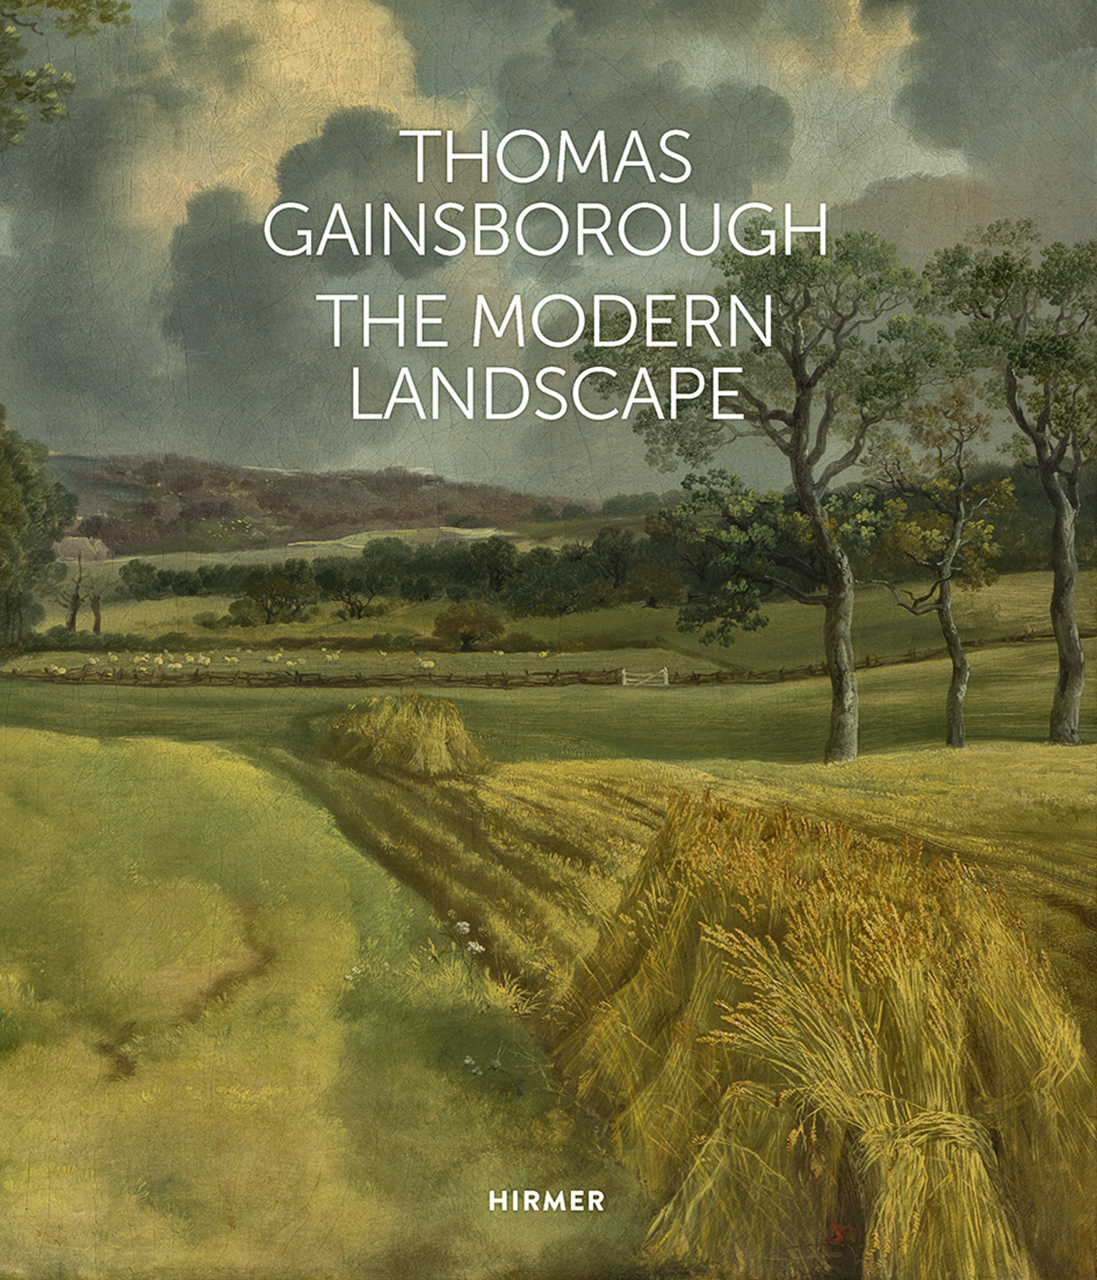 Thomas Gainsborough: The Modern Landscape